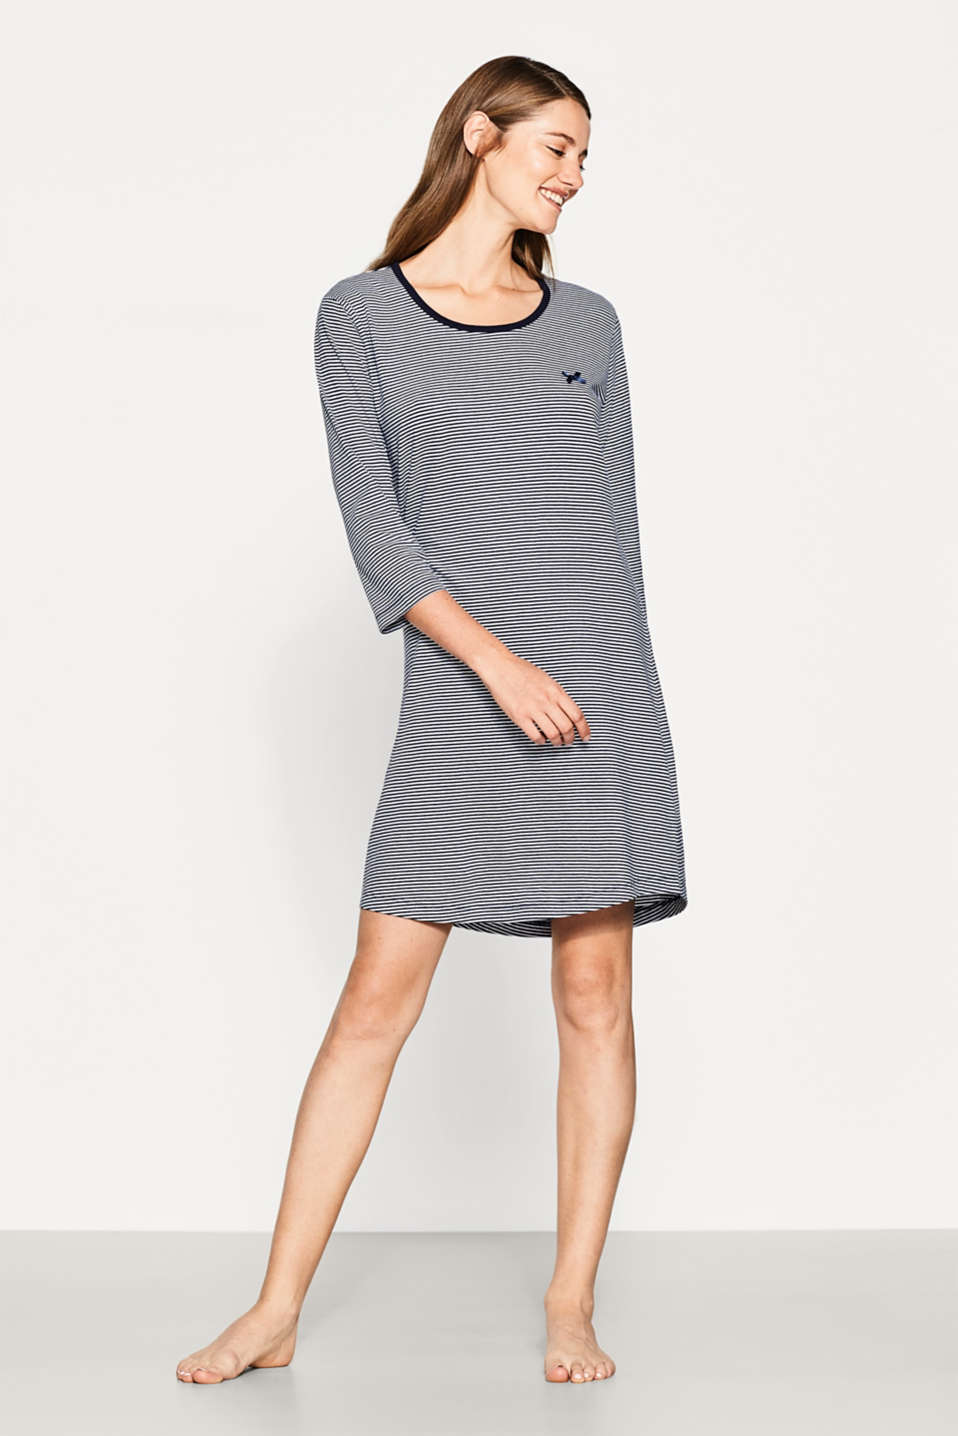 Esprit - Jersey nightdress in 100% cotton